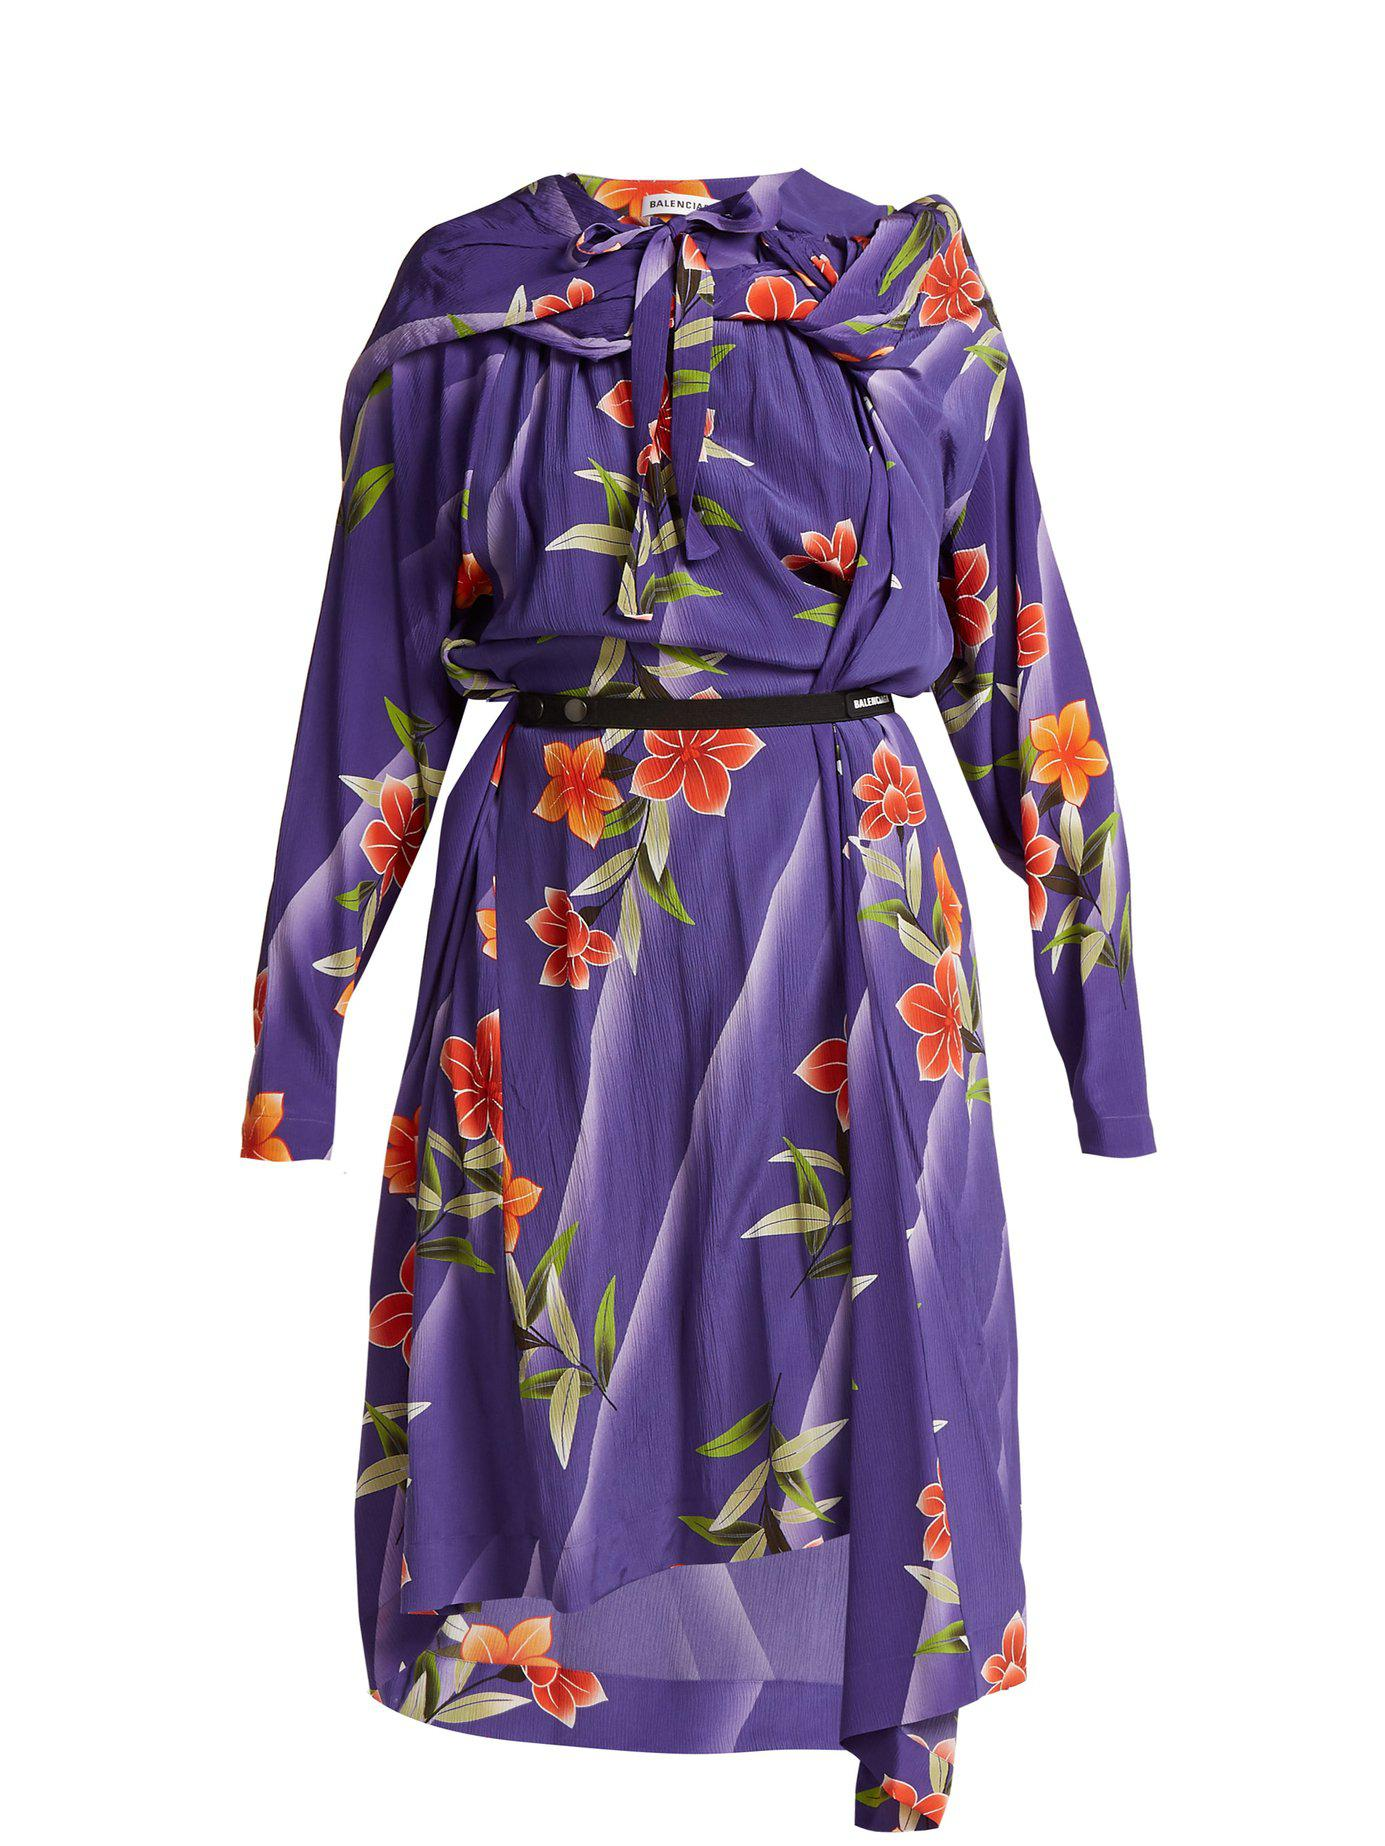 a982db9d5afa Lyst - Balenciaga Floral Print Twisted Silk Dress in Purple